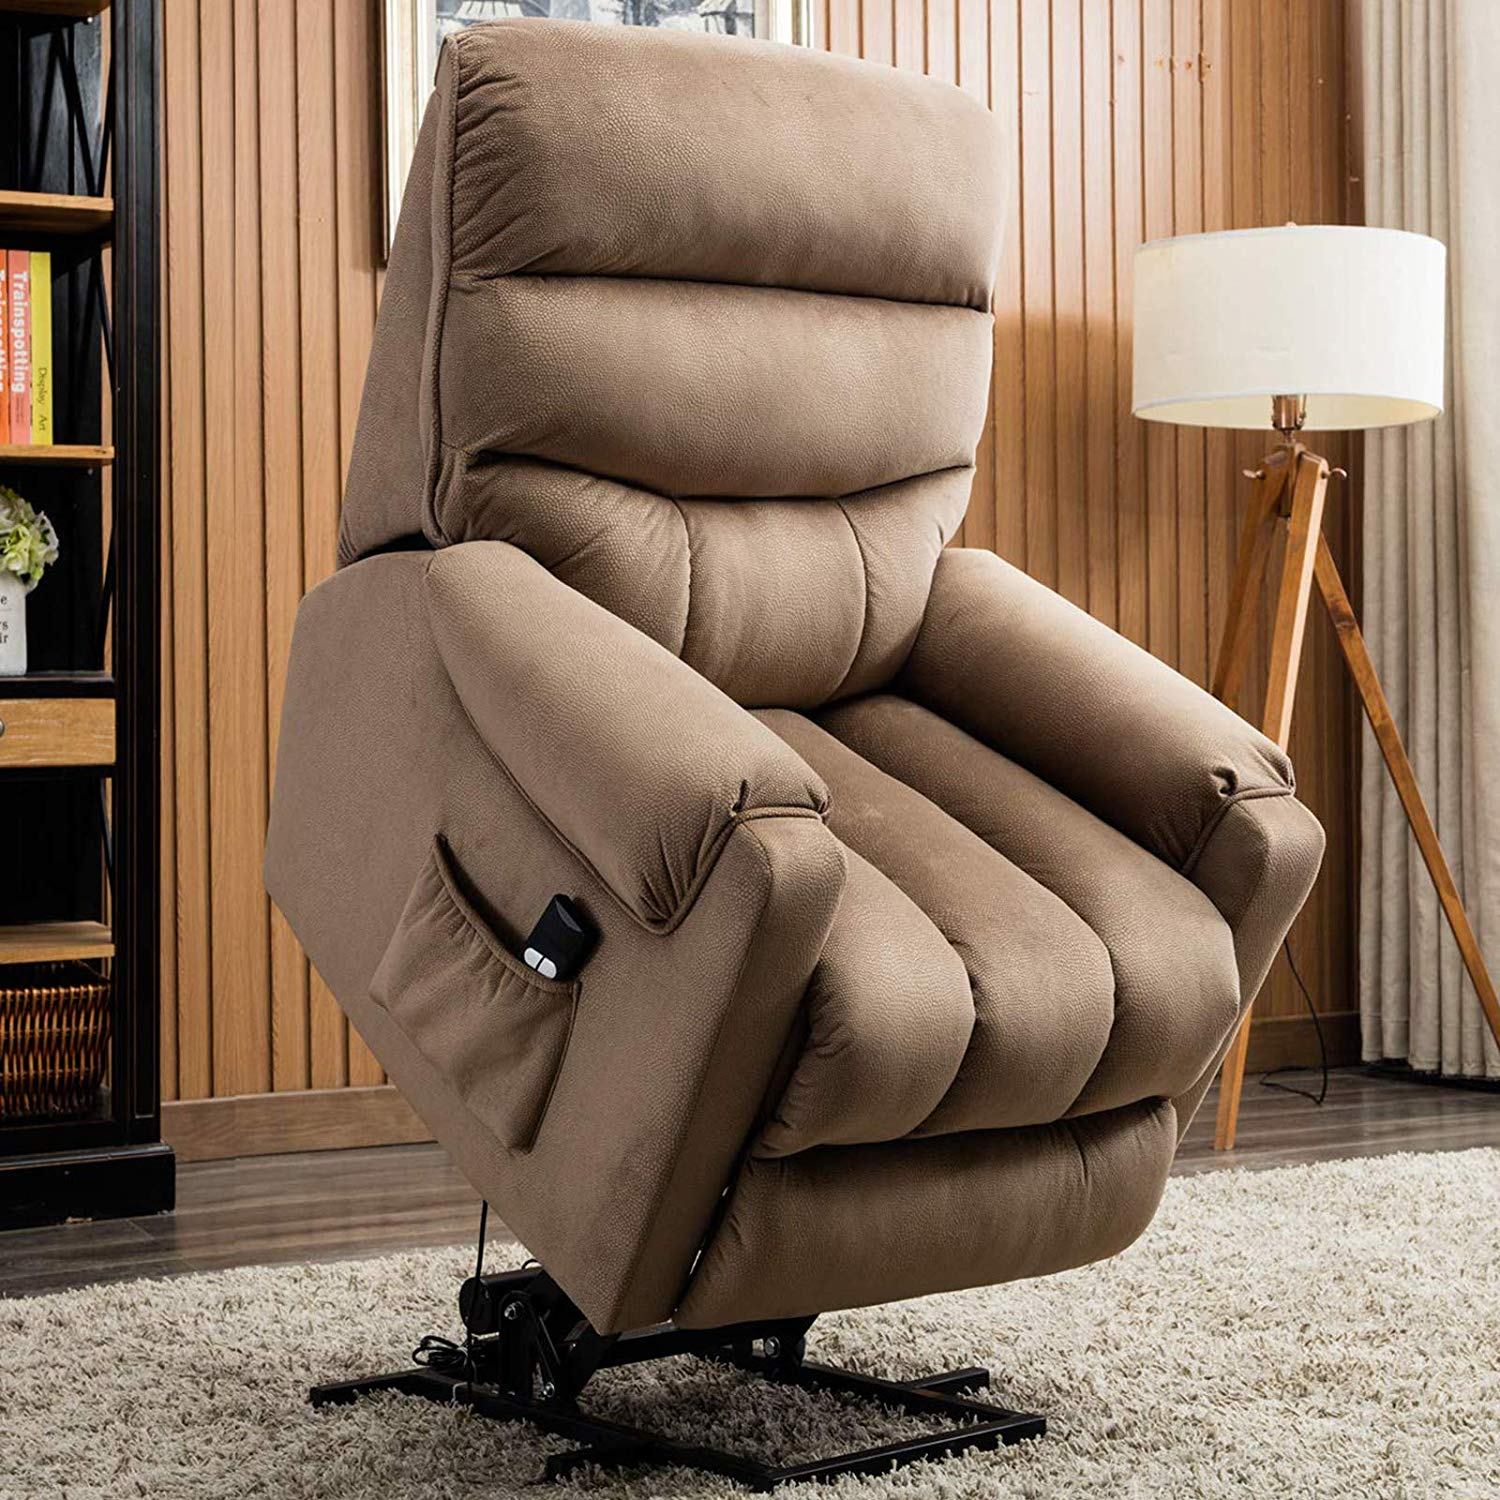 Miraculous 5 Factors To Consider When Purchasing Your Lift Chair Download Free Architecture Designs Scobabritishbridgeorg